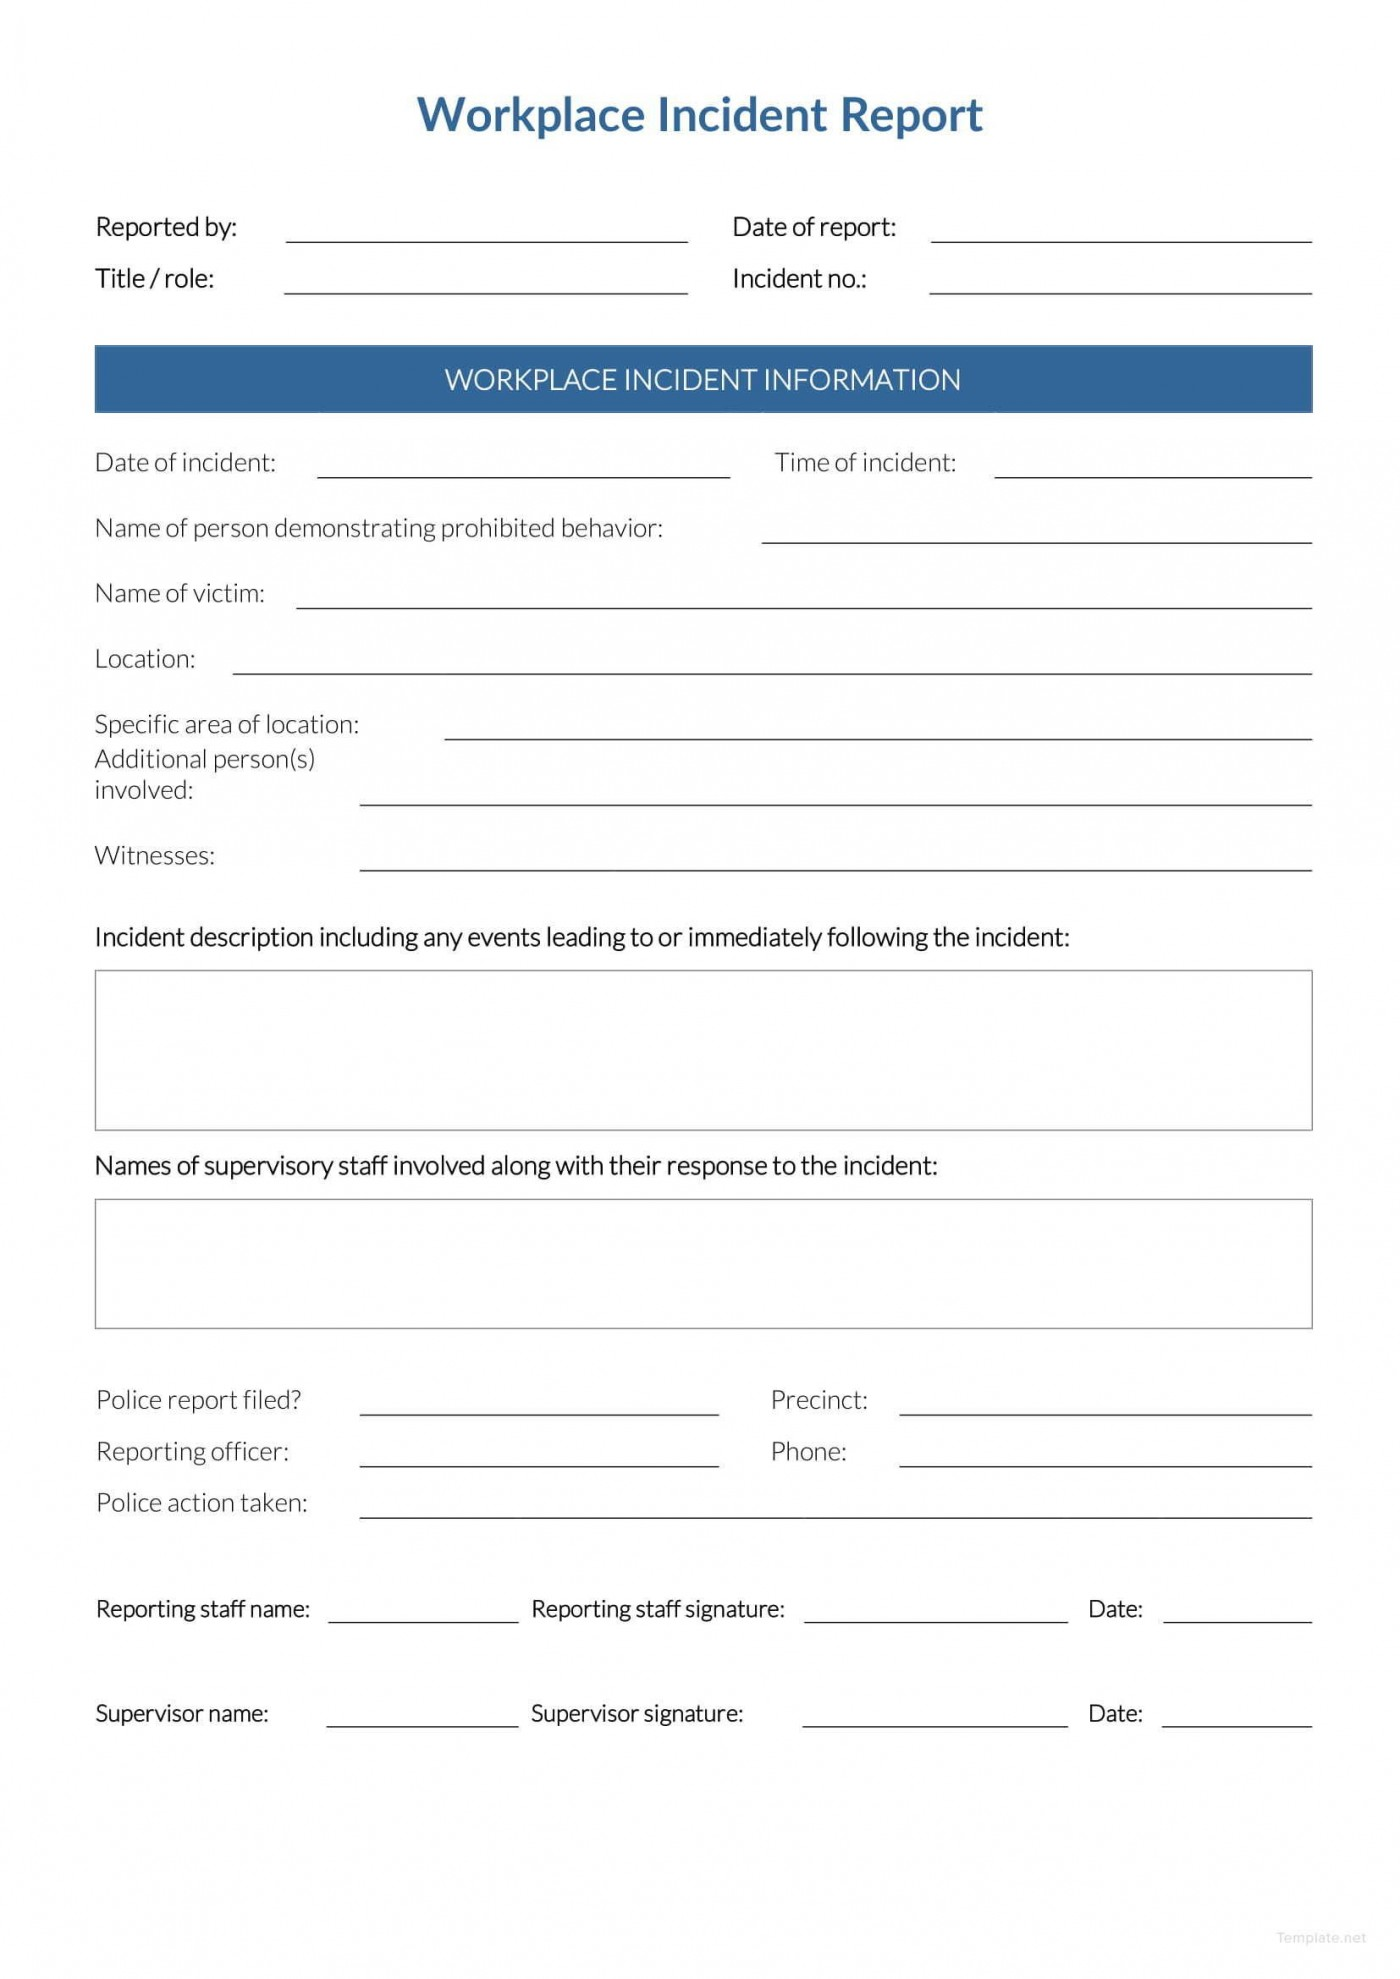 Incident Report Form Template Word Workplace  Downloadable Free1400